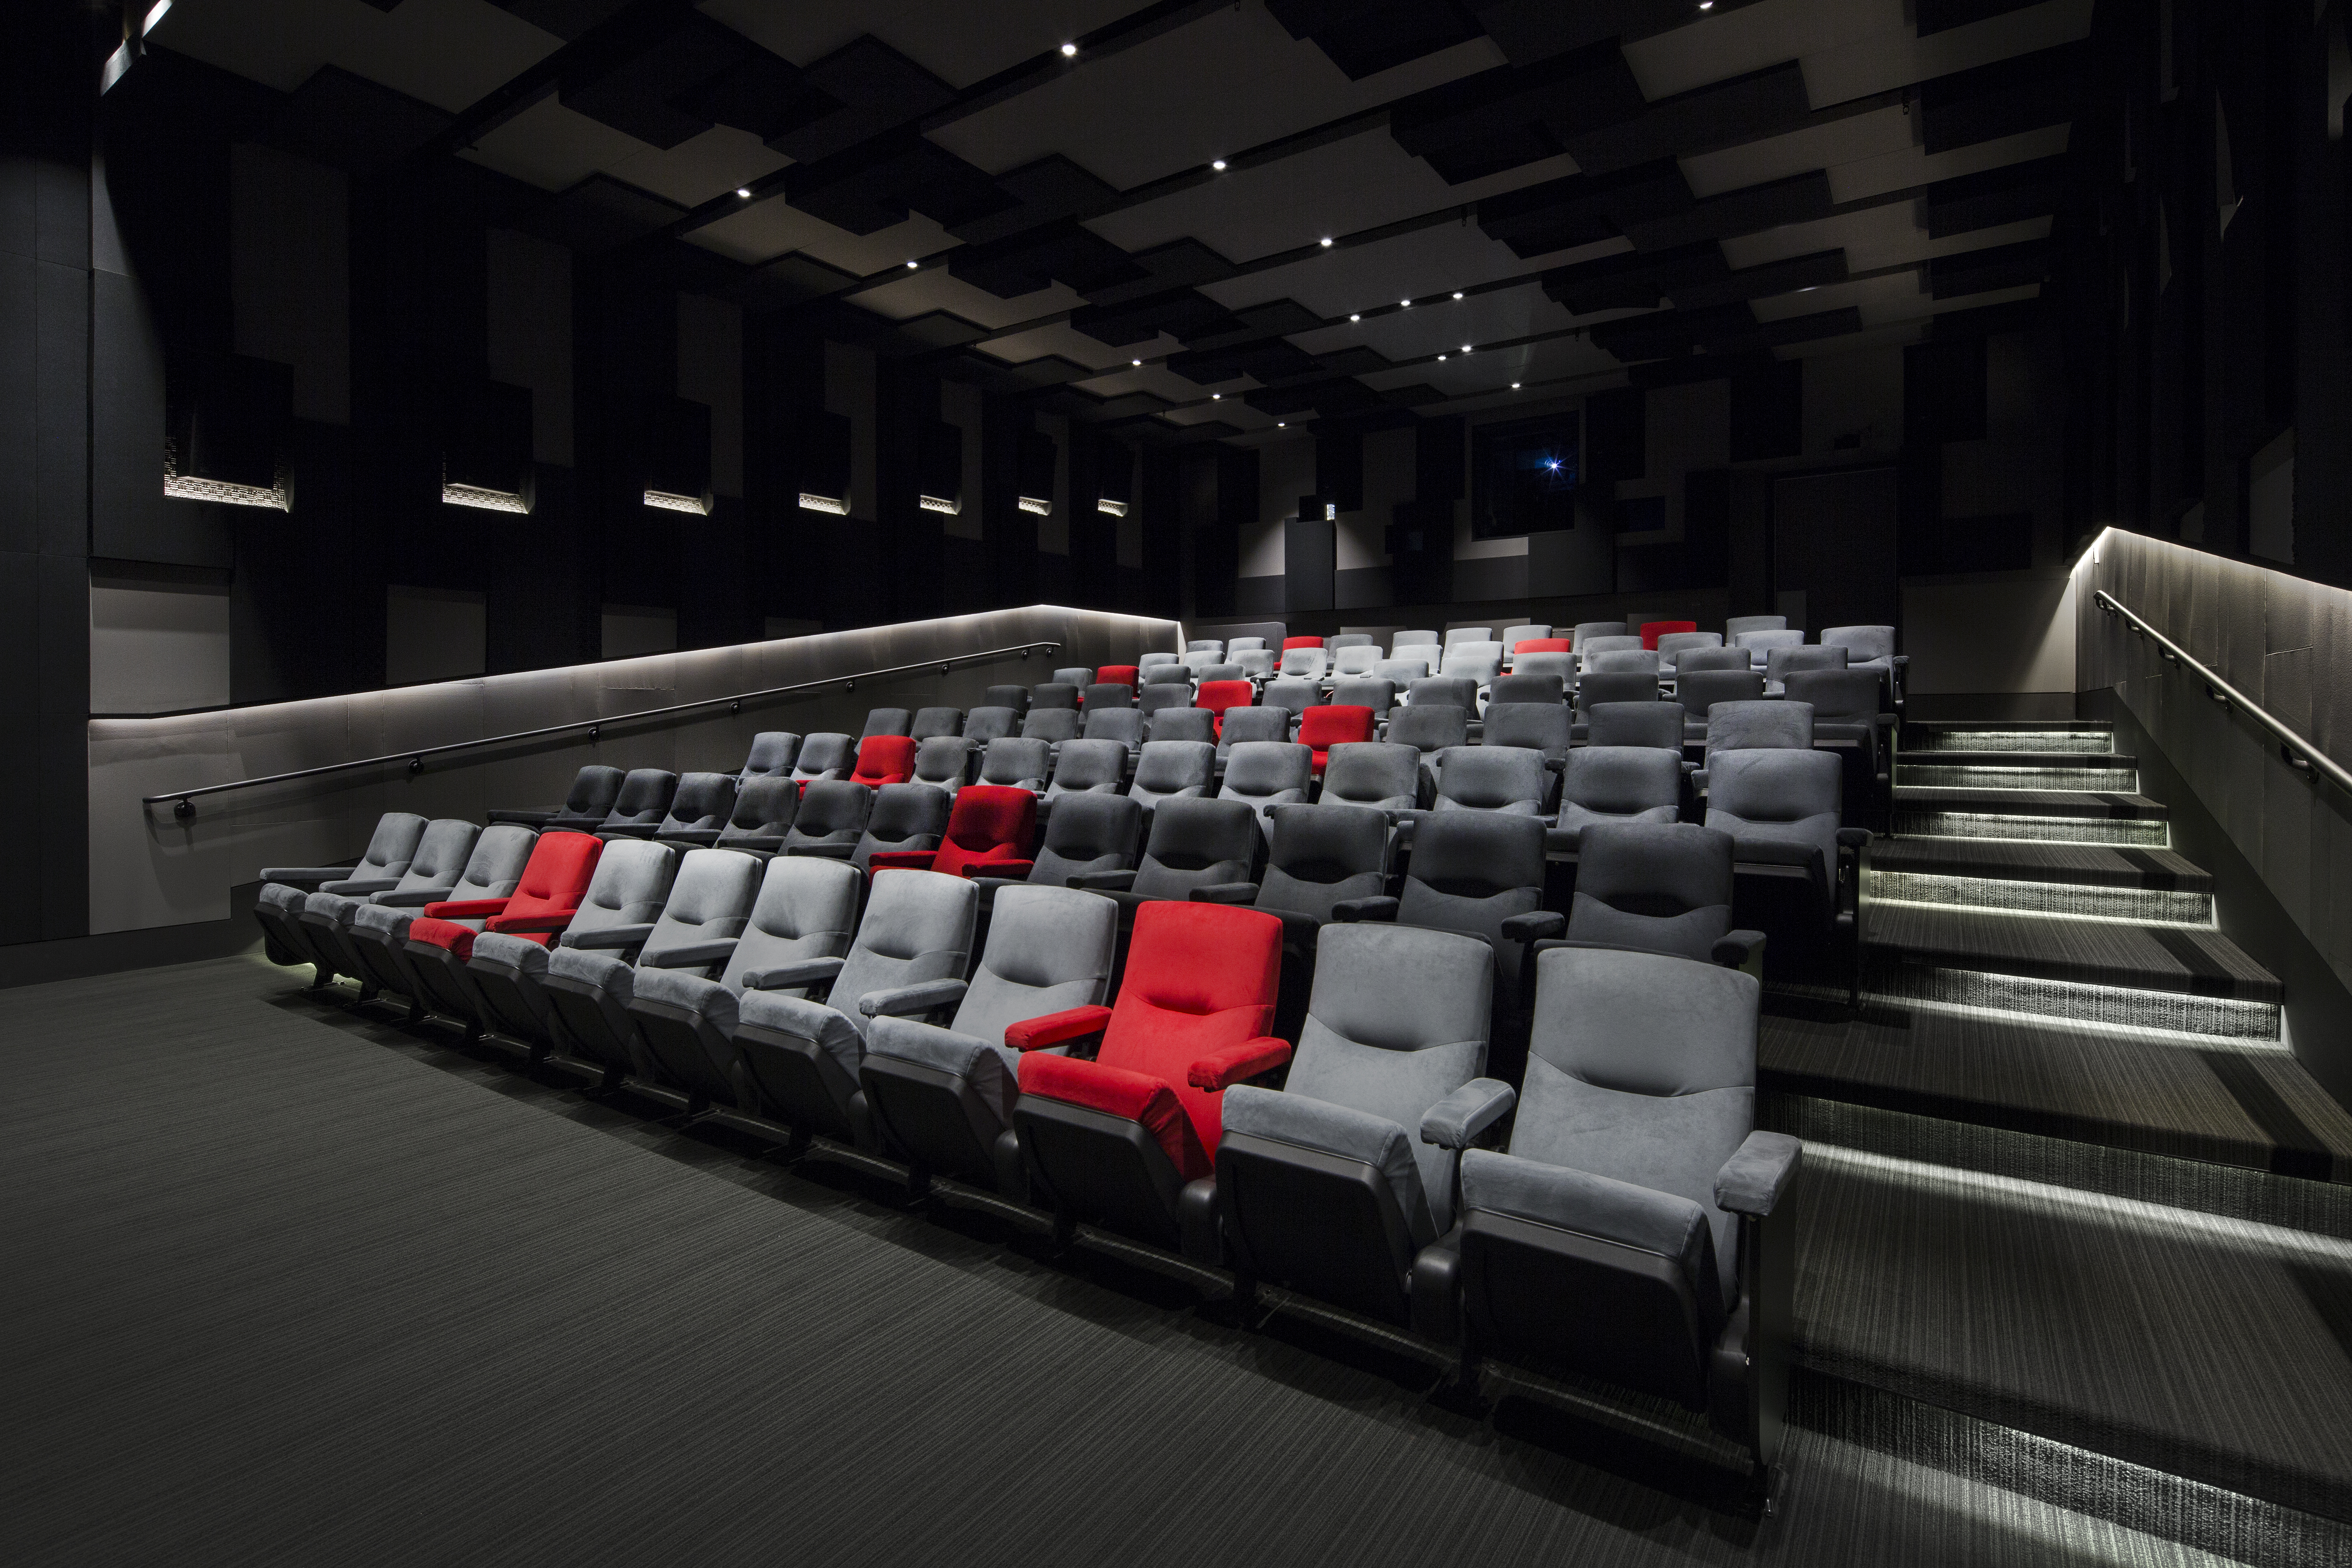 JAMES BLAKELEY THEATER - 92 Seats